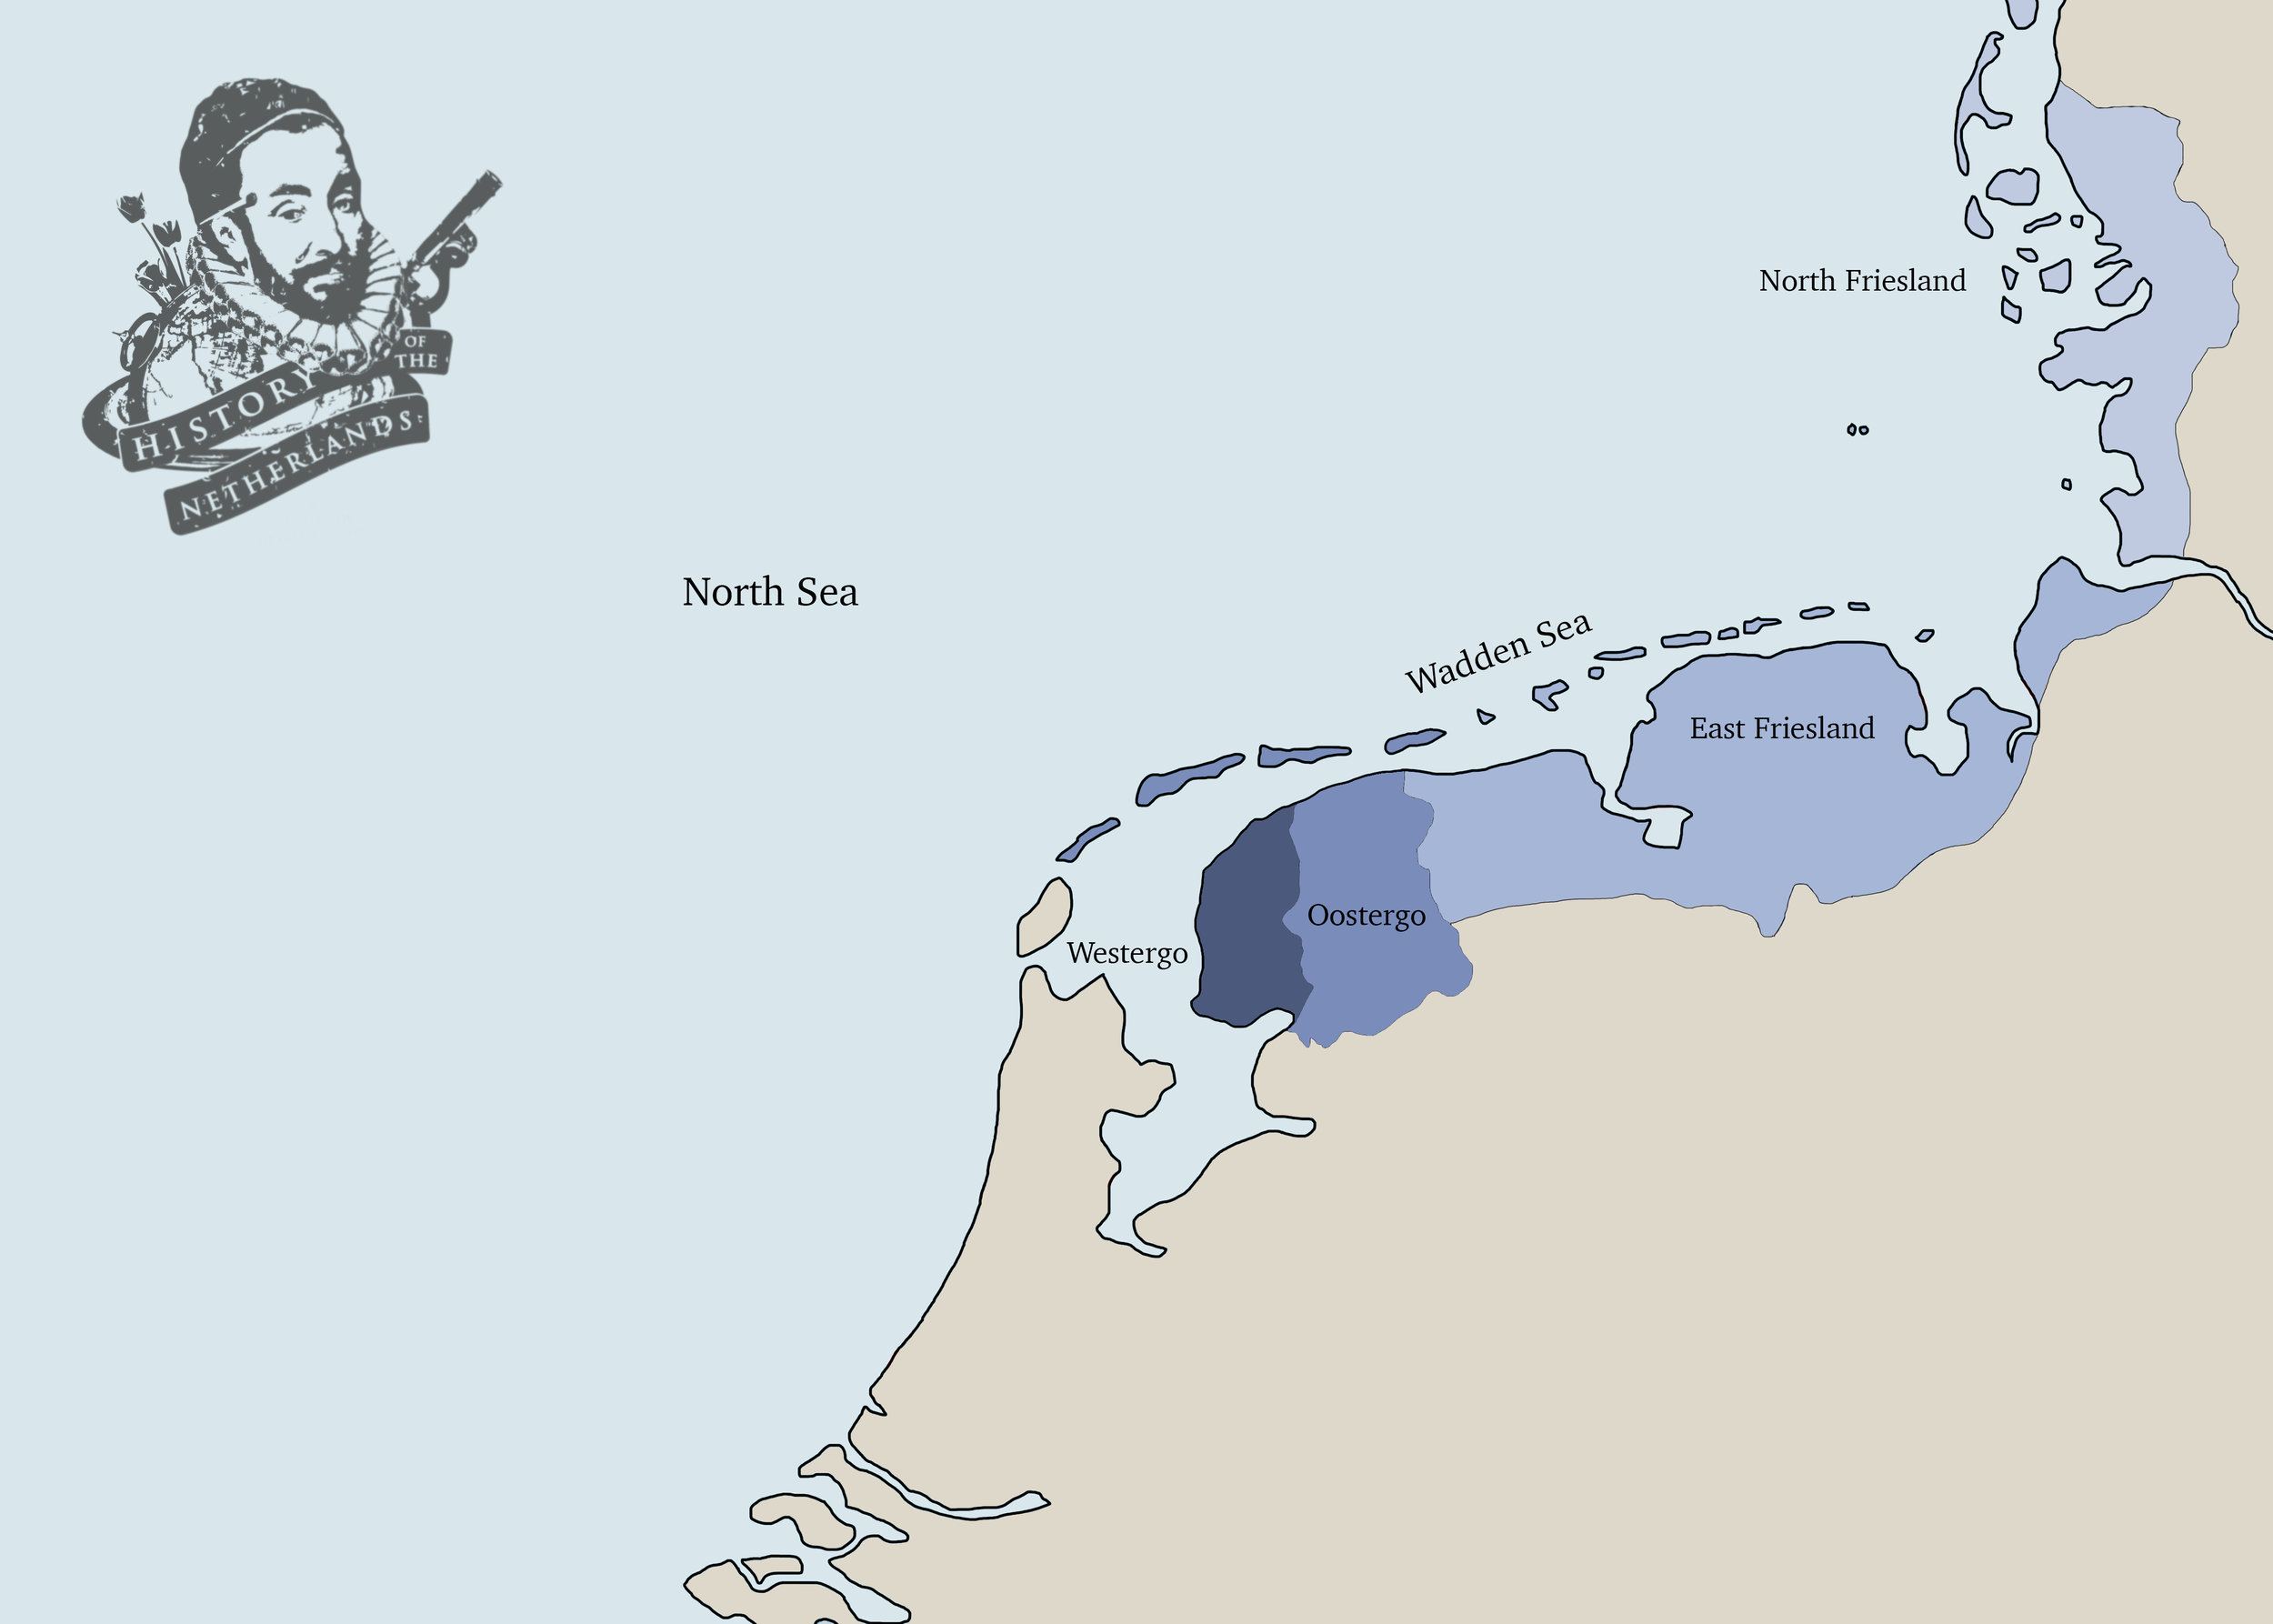 The Frisian states in the 1300s extended across parts of today's Netherlands, Germany and Denmark. Map by David Cenzer.